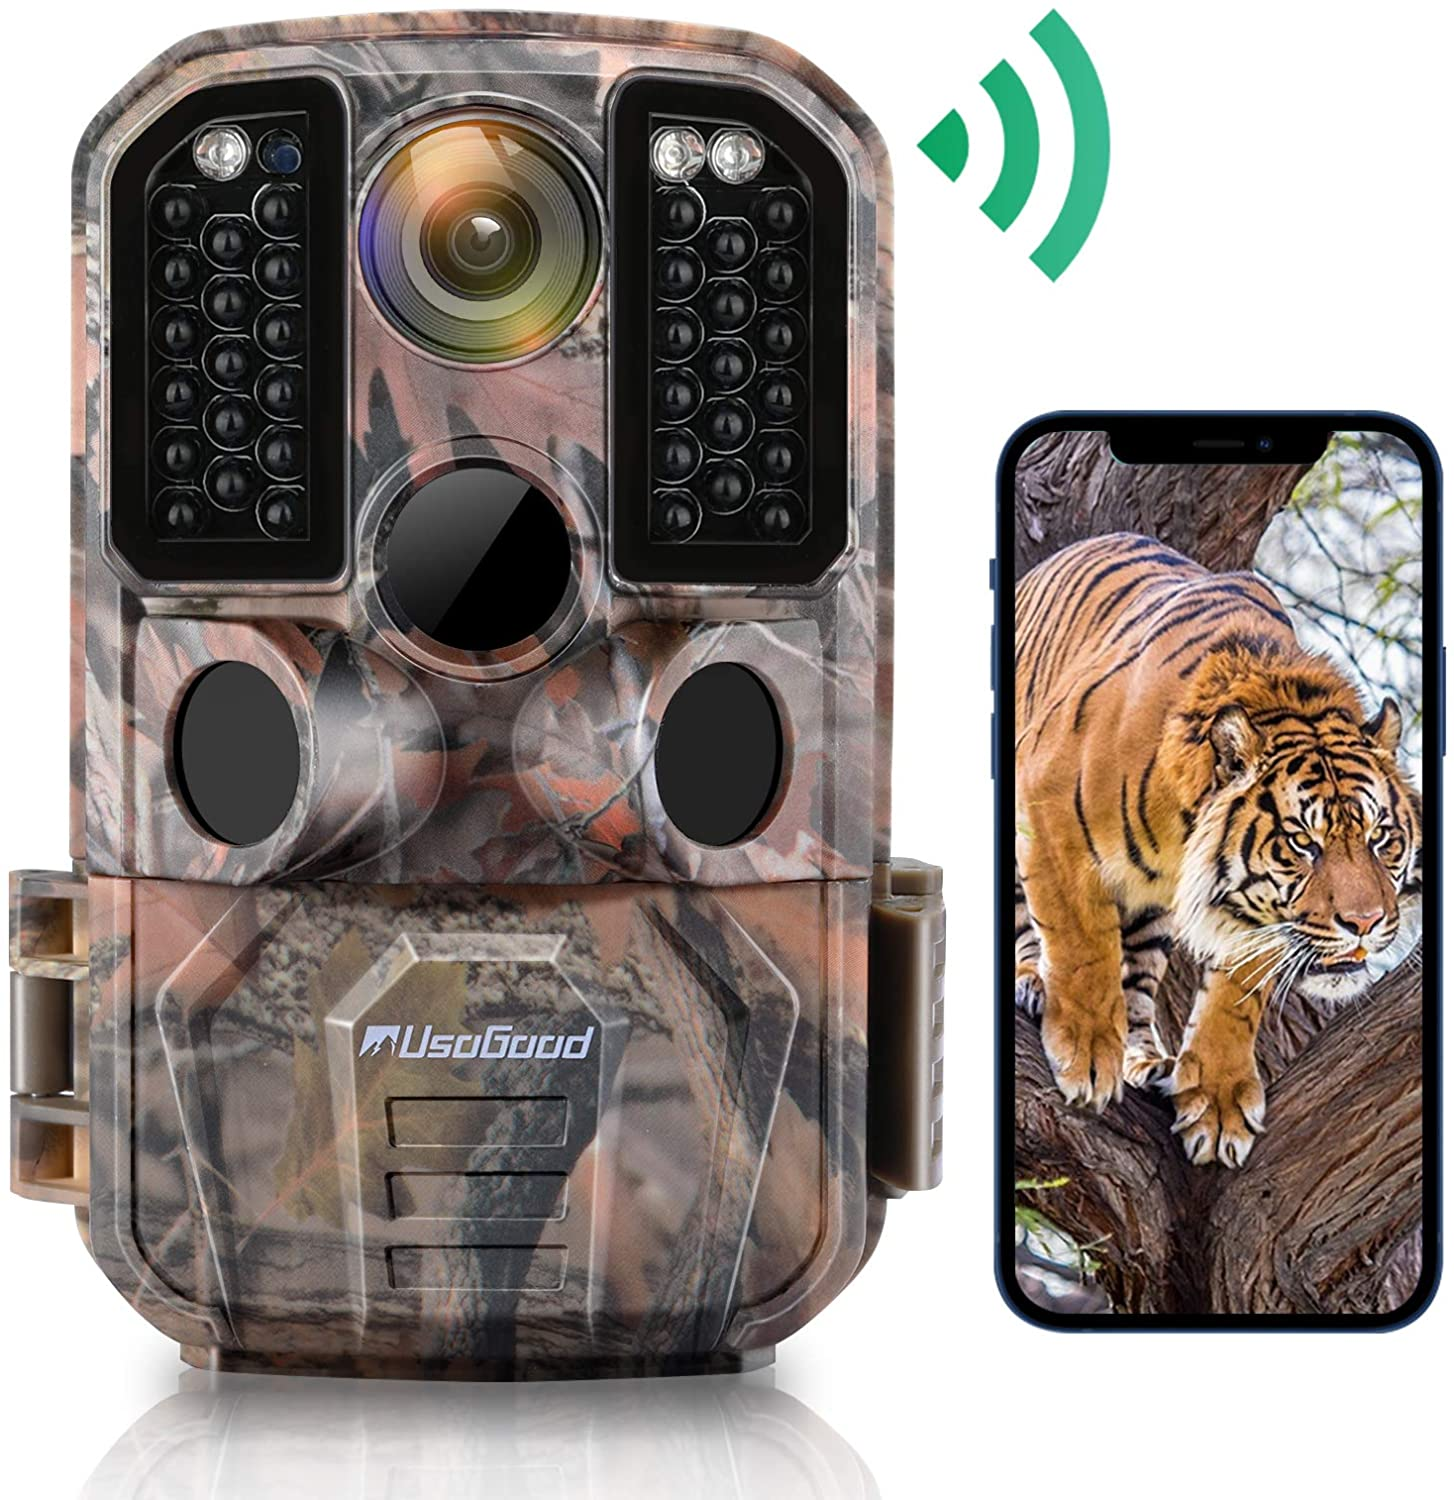 WiFi quality assurance Trail Camera Usogood 24MP 1296P Selling rankings with Night Cameras Game IR